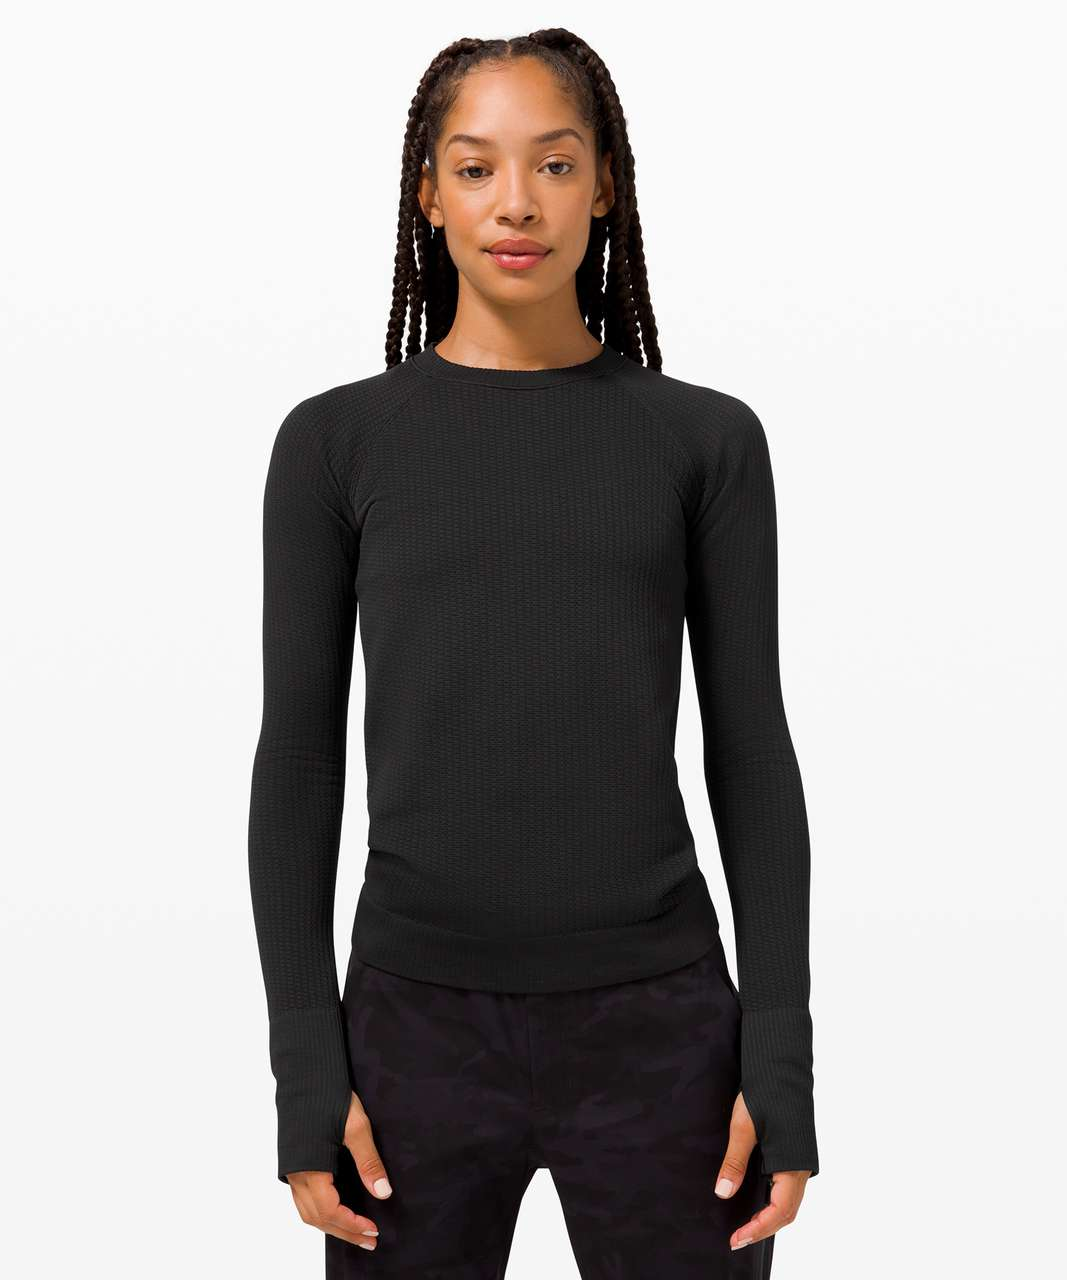 Lululemon Rest Less Pullover *Bubble Dot - Bubble Dot Black